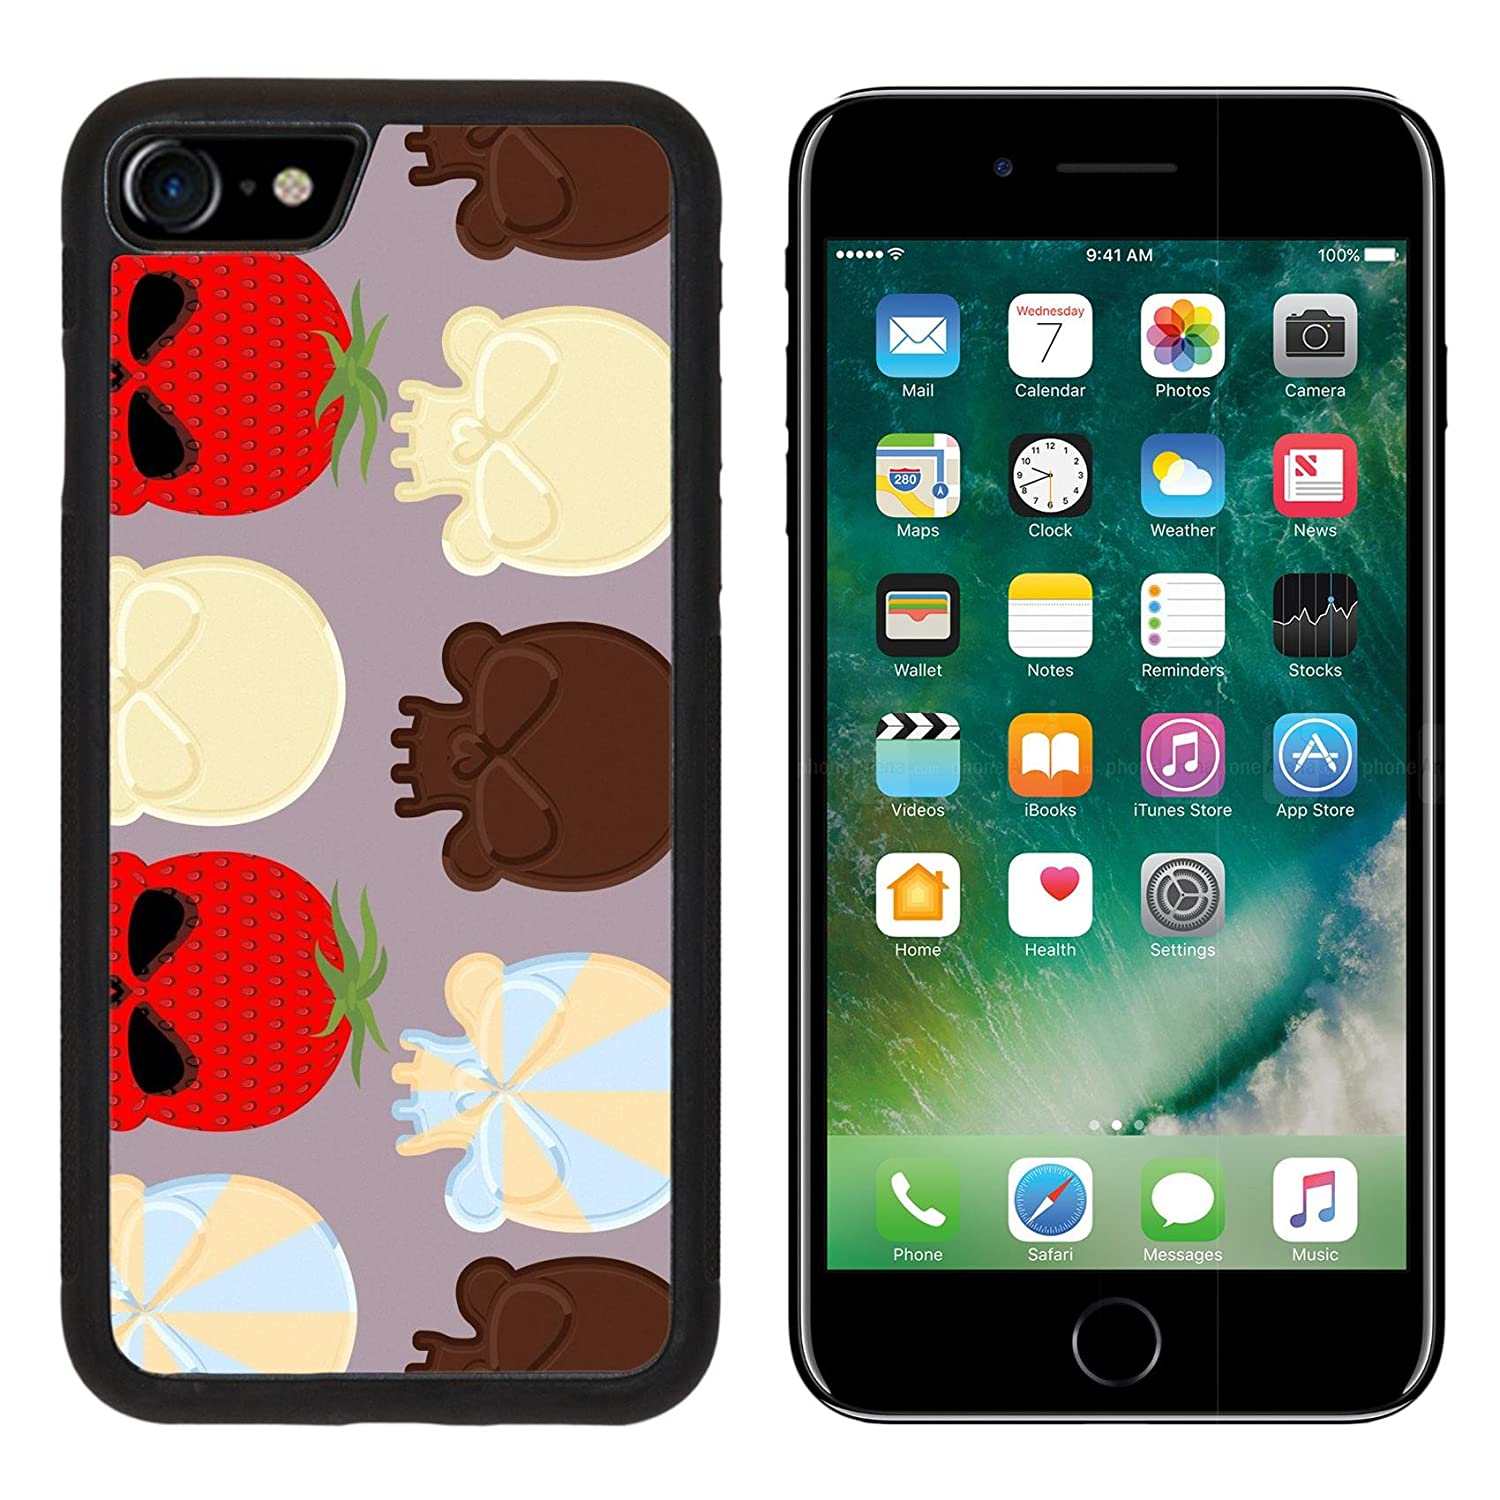 Luxlady Apple iPhone 7 iPhone 8 Aluminum Backplate Bumper Snap iphone7/8 Case ID: 43128818 Sweet candy skulls seamless pattern Head skeleton made of chocolate and strawb